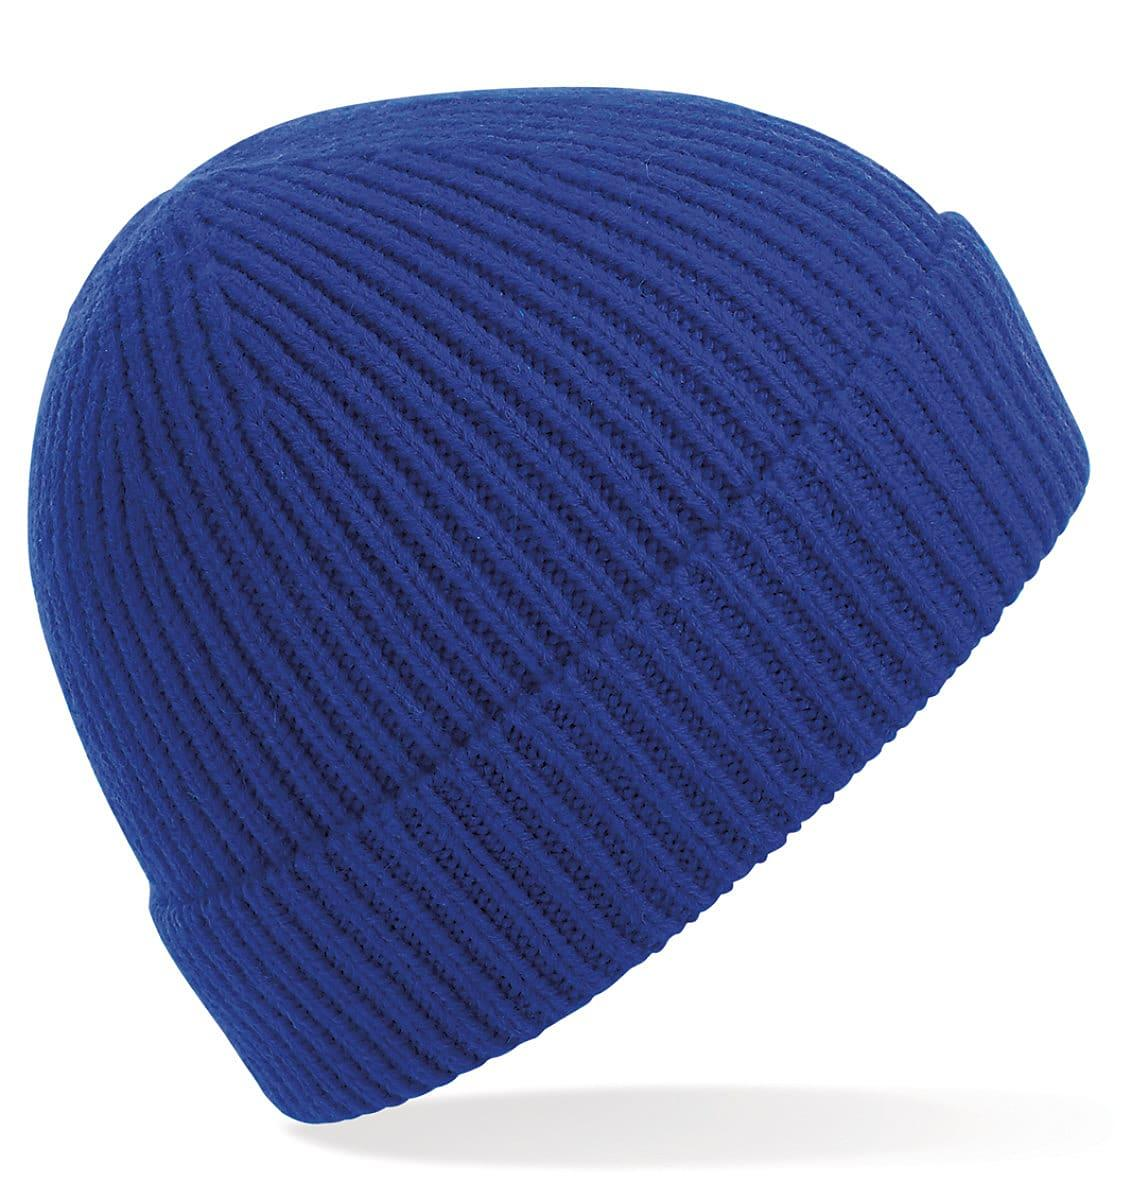 Beechfield Engineered Knit Ribbed Beanie Hat in Bright Royal (Product Code: B380)